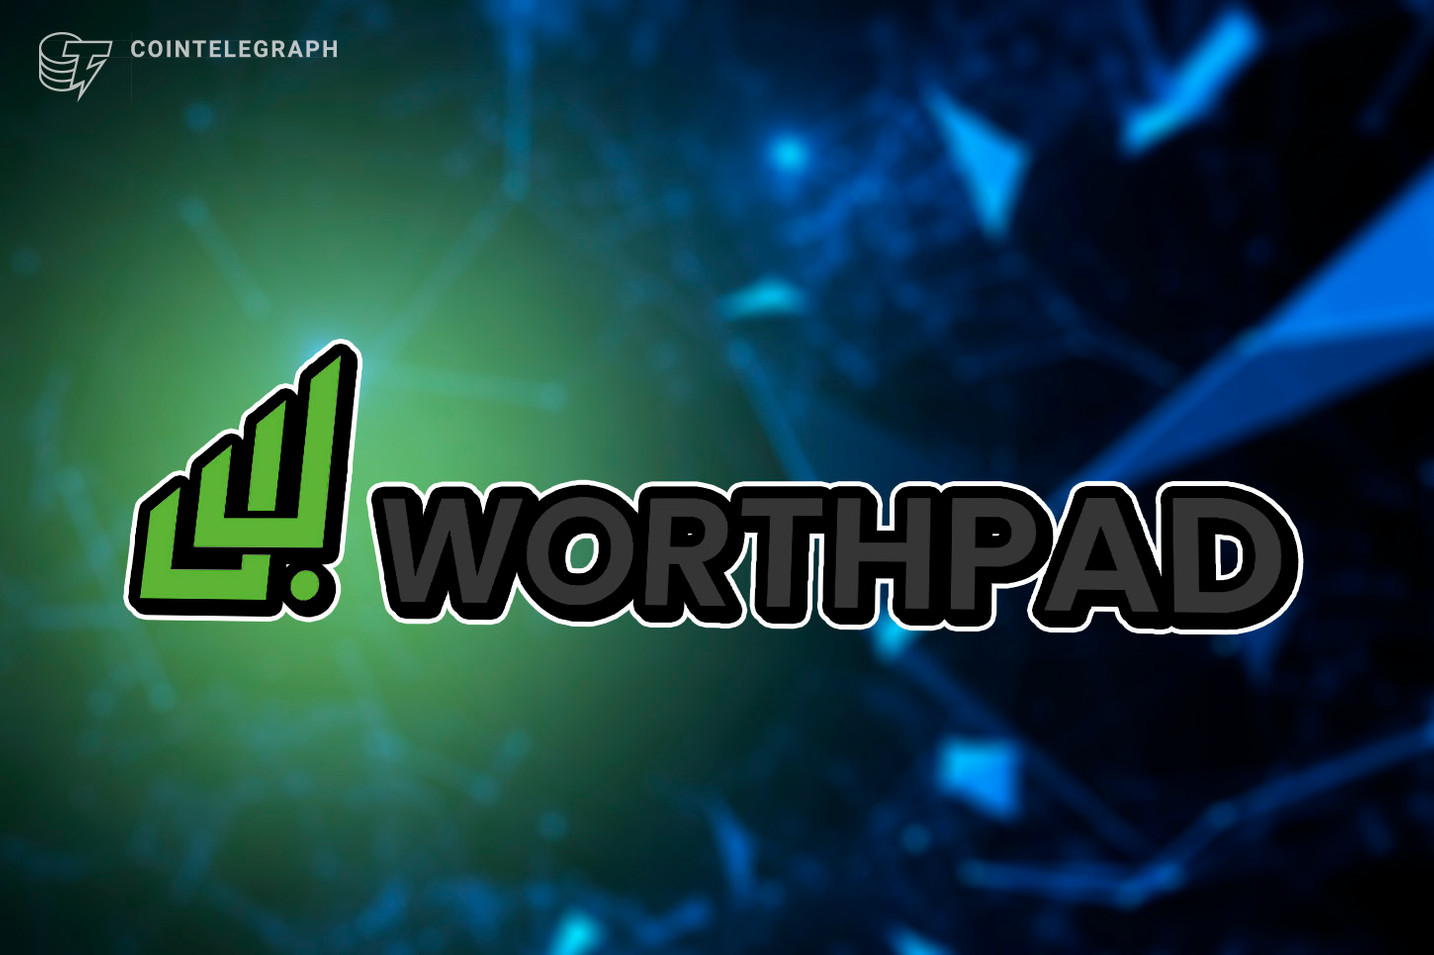 Revolutionary new platform Worthpad aims to create  unlimited wealth for investors